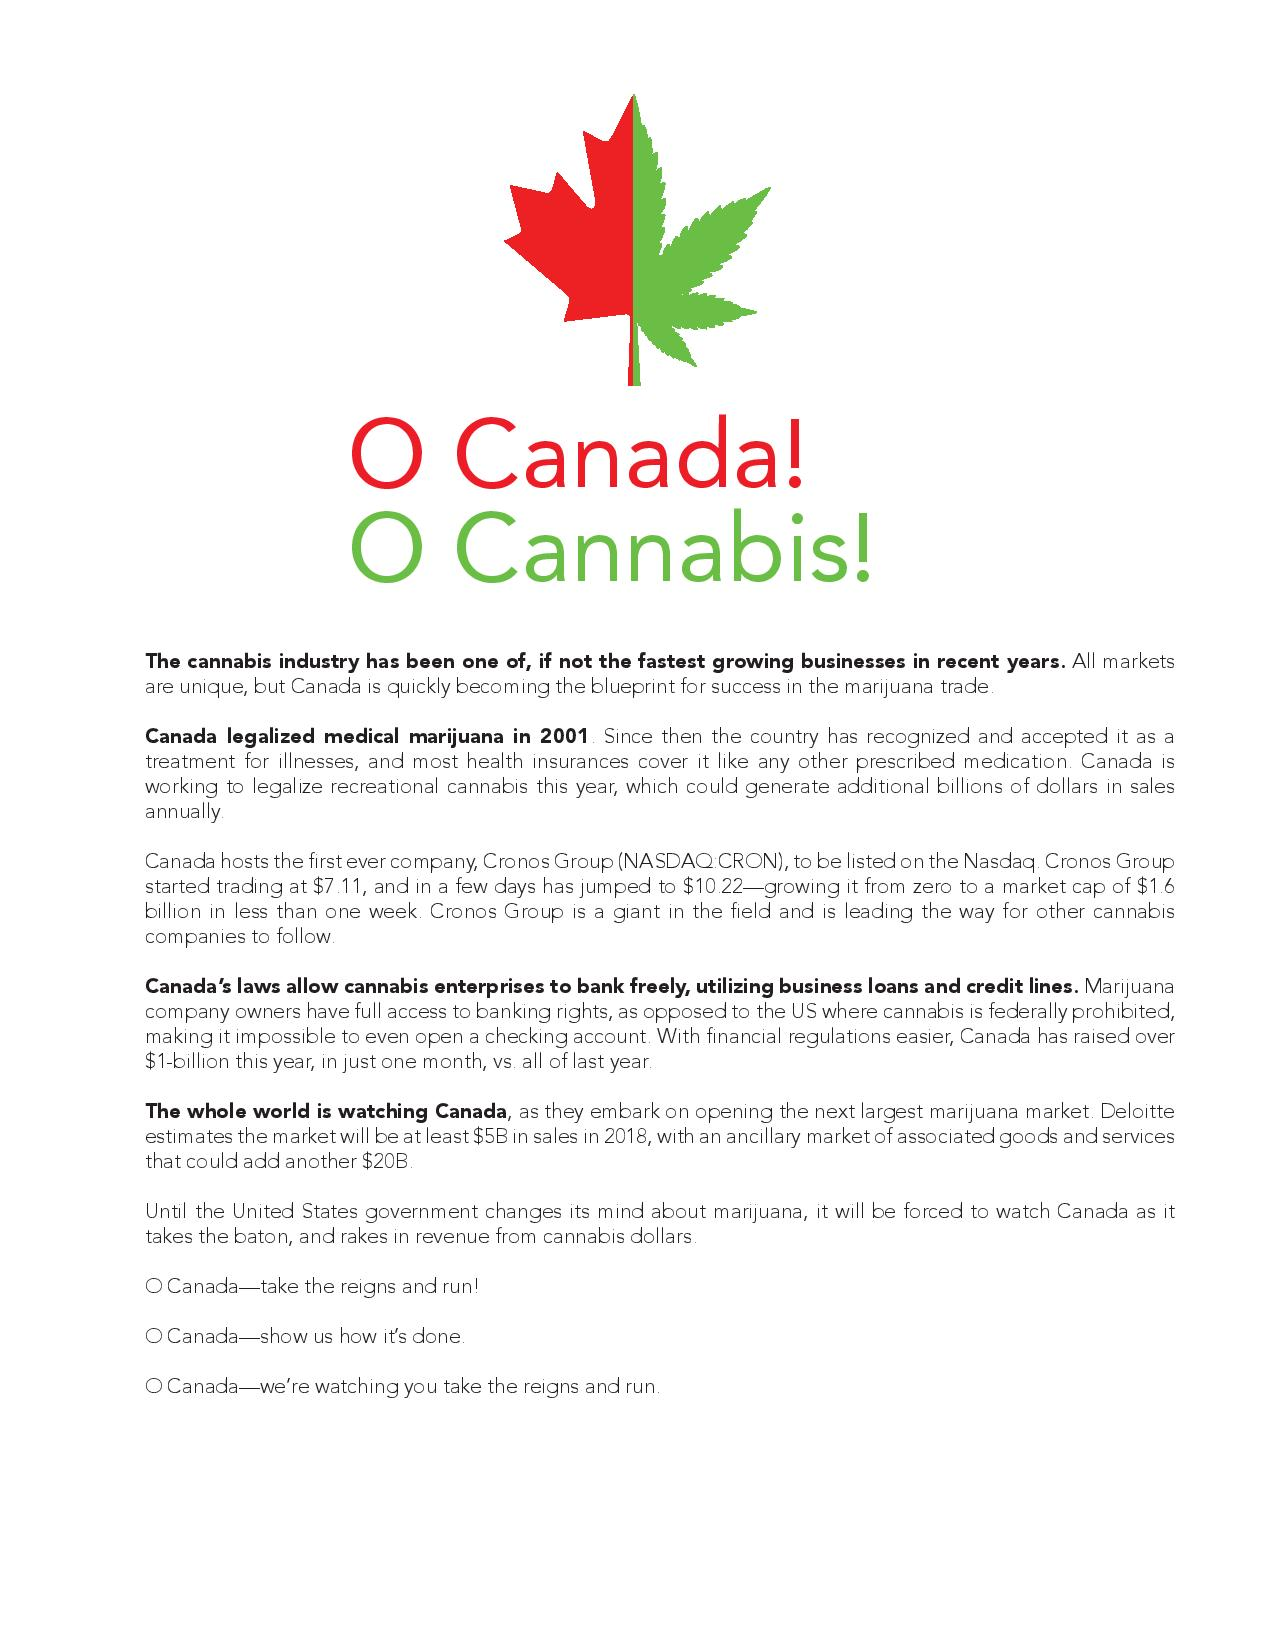 O Canada - O Cannabis - Cannabis Packaging